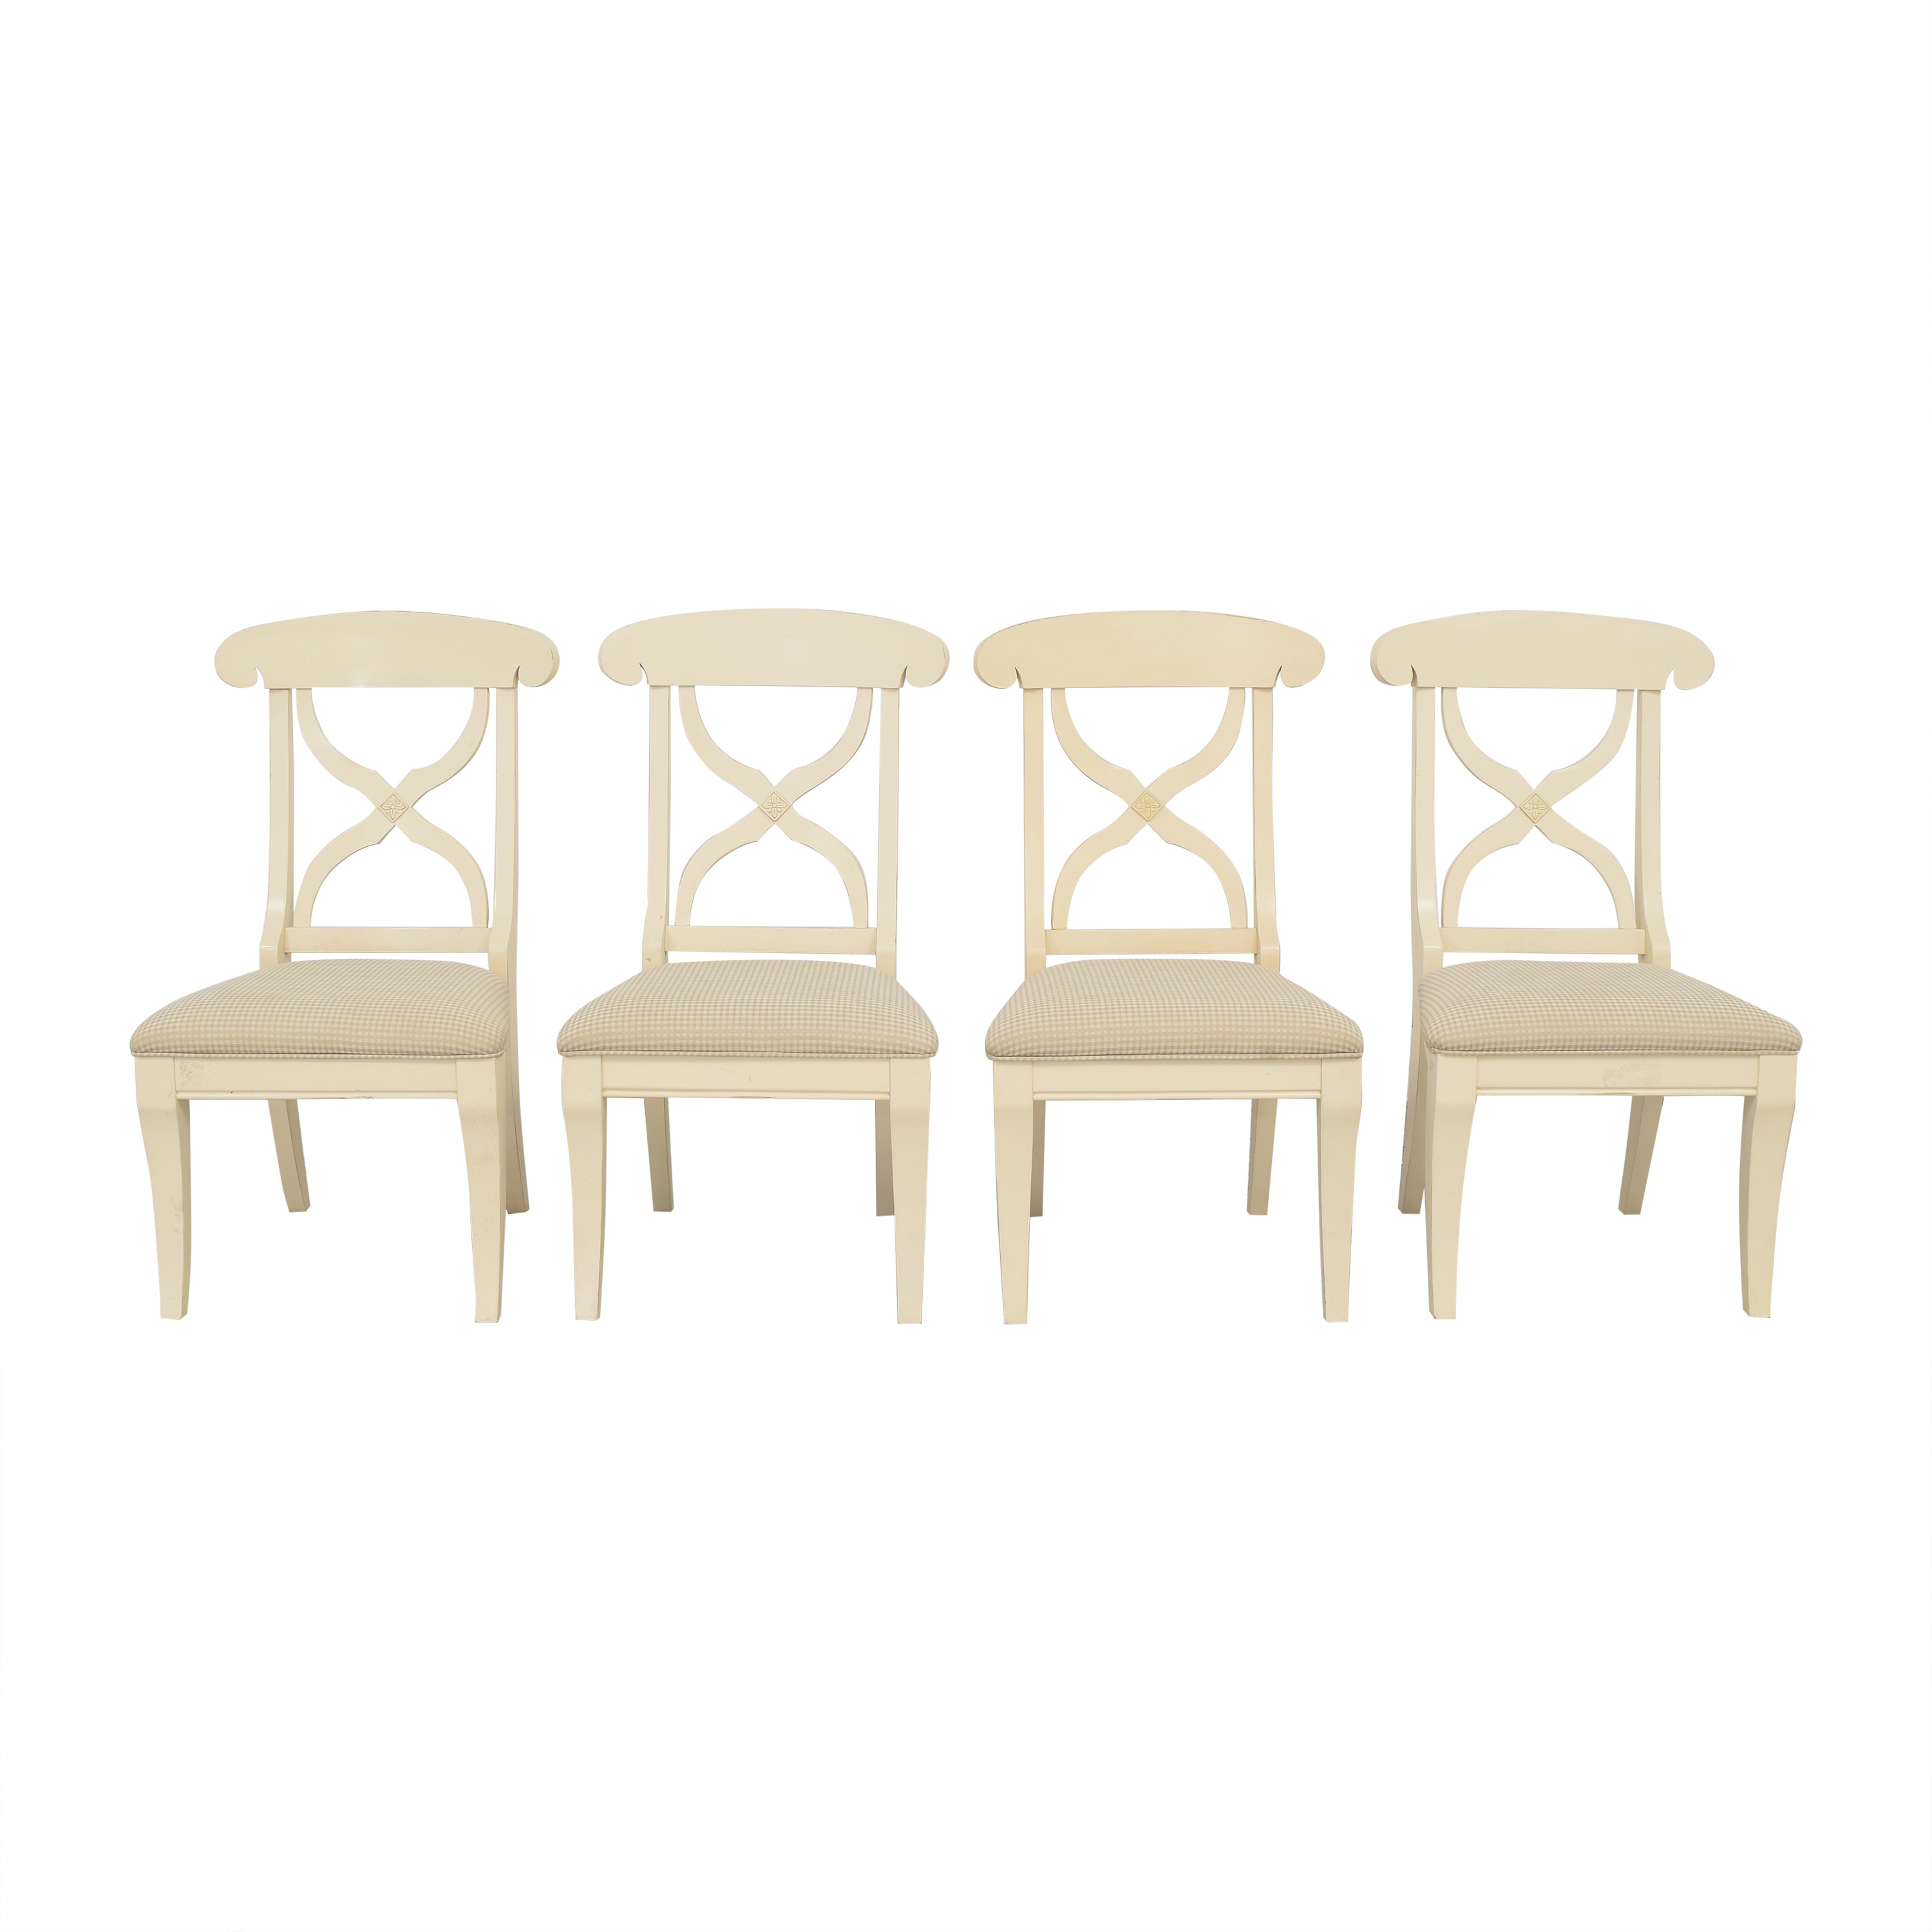 American Furniture Warehouse American Furniture Warehouse Cross Back Dining Chairs Chairs